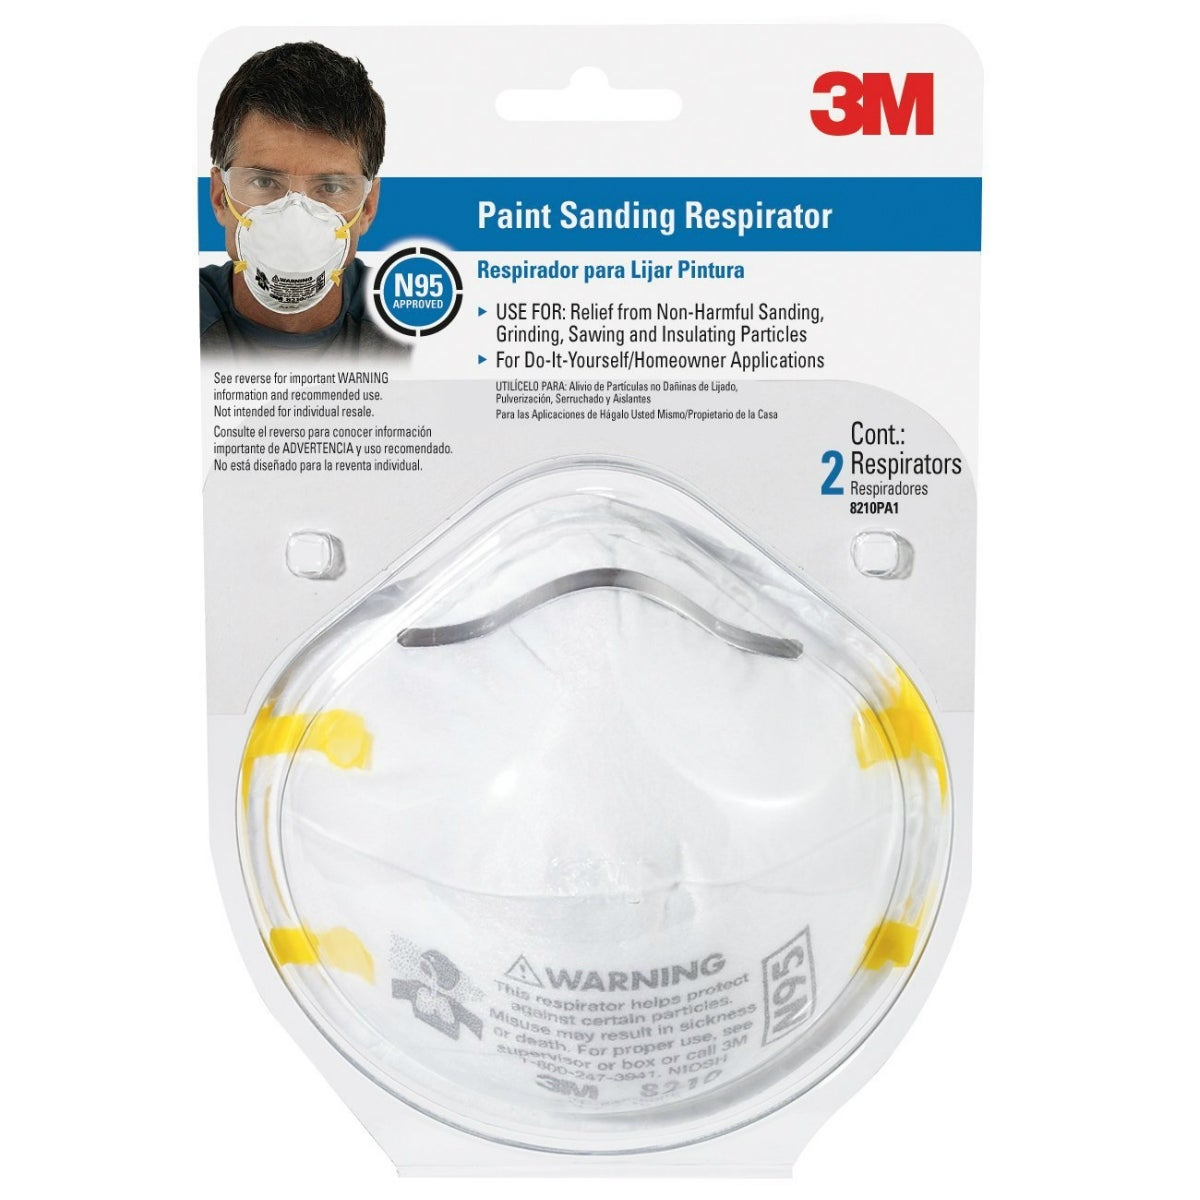 3M 8210PA1-A TEKK Protection N95 Paint Sanding Respirator, 2-Pack